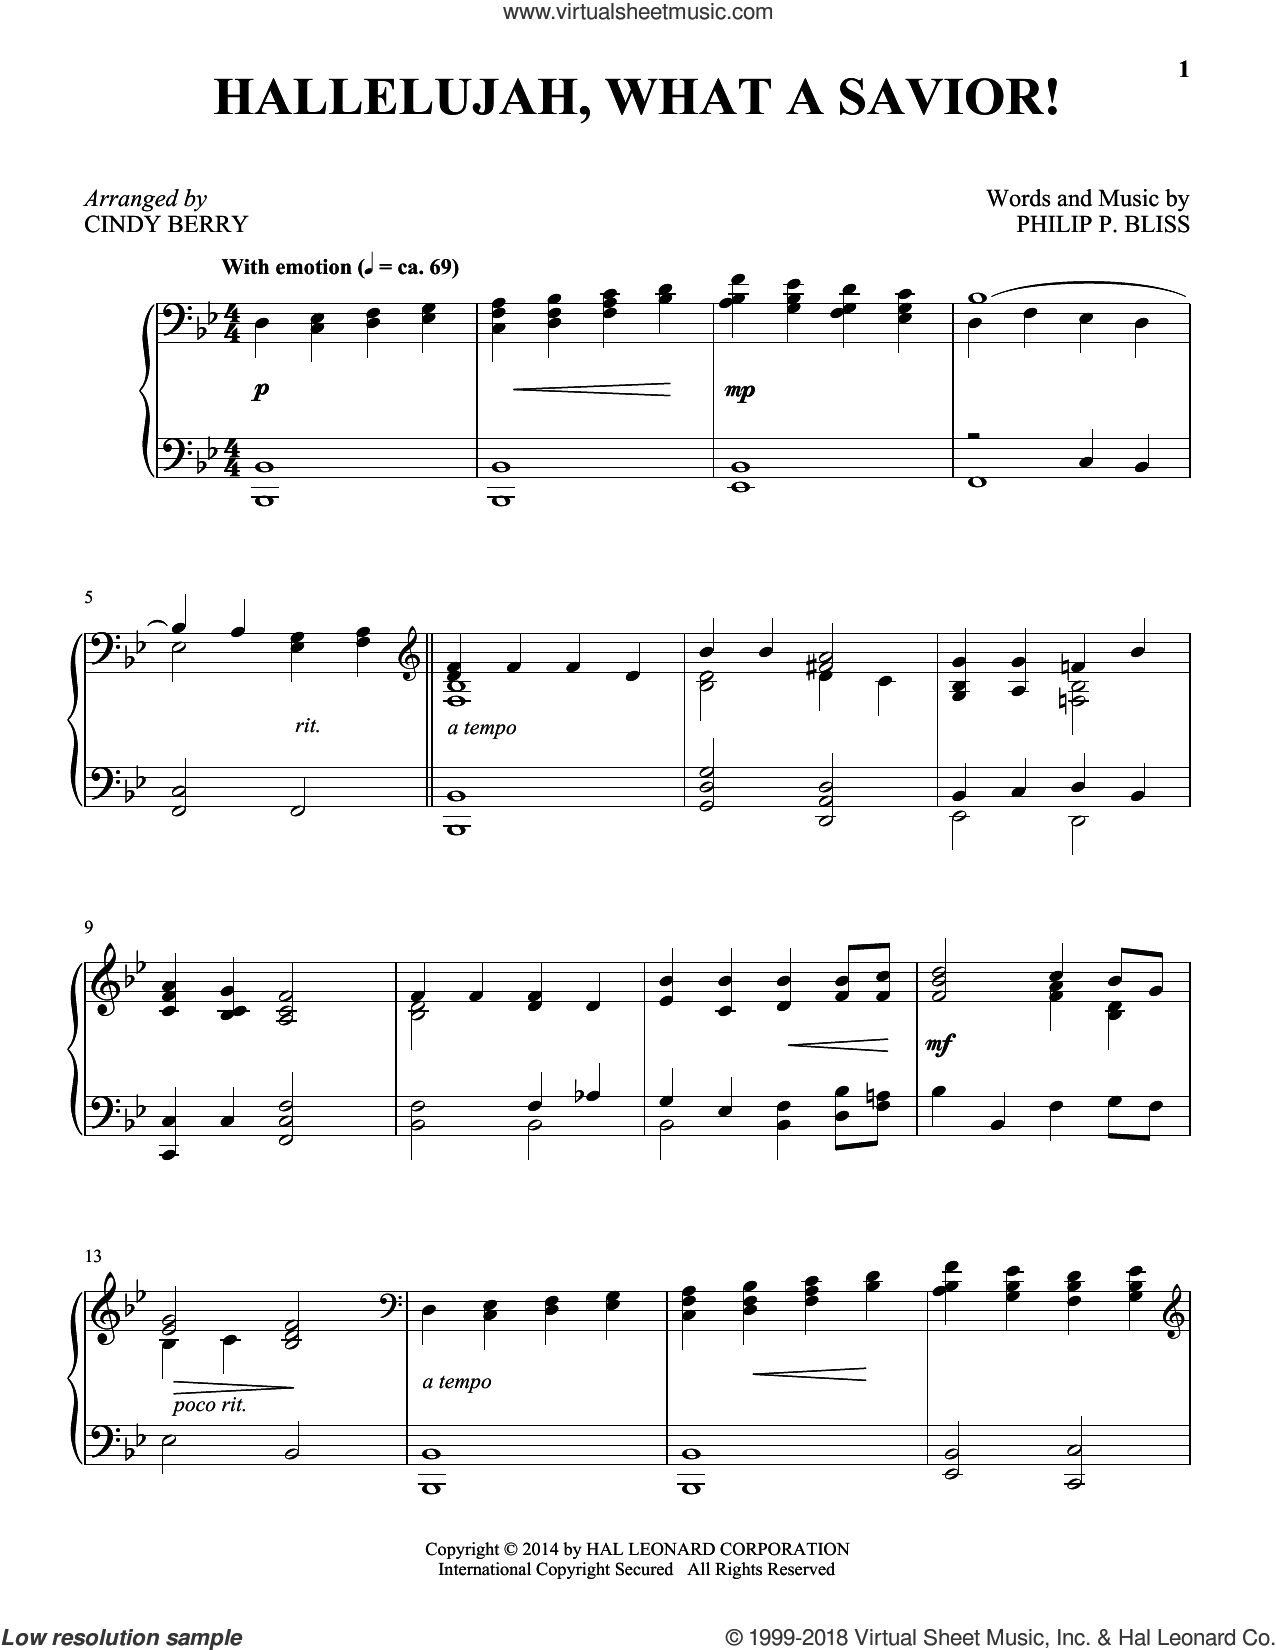 Hallelujah, What A Savior! sheet music for piano solo by Philip P. Bliss and Cindy Berry, intermediate skill level